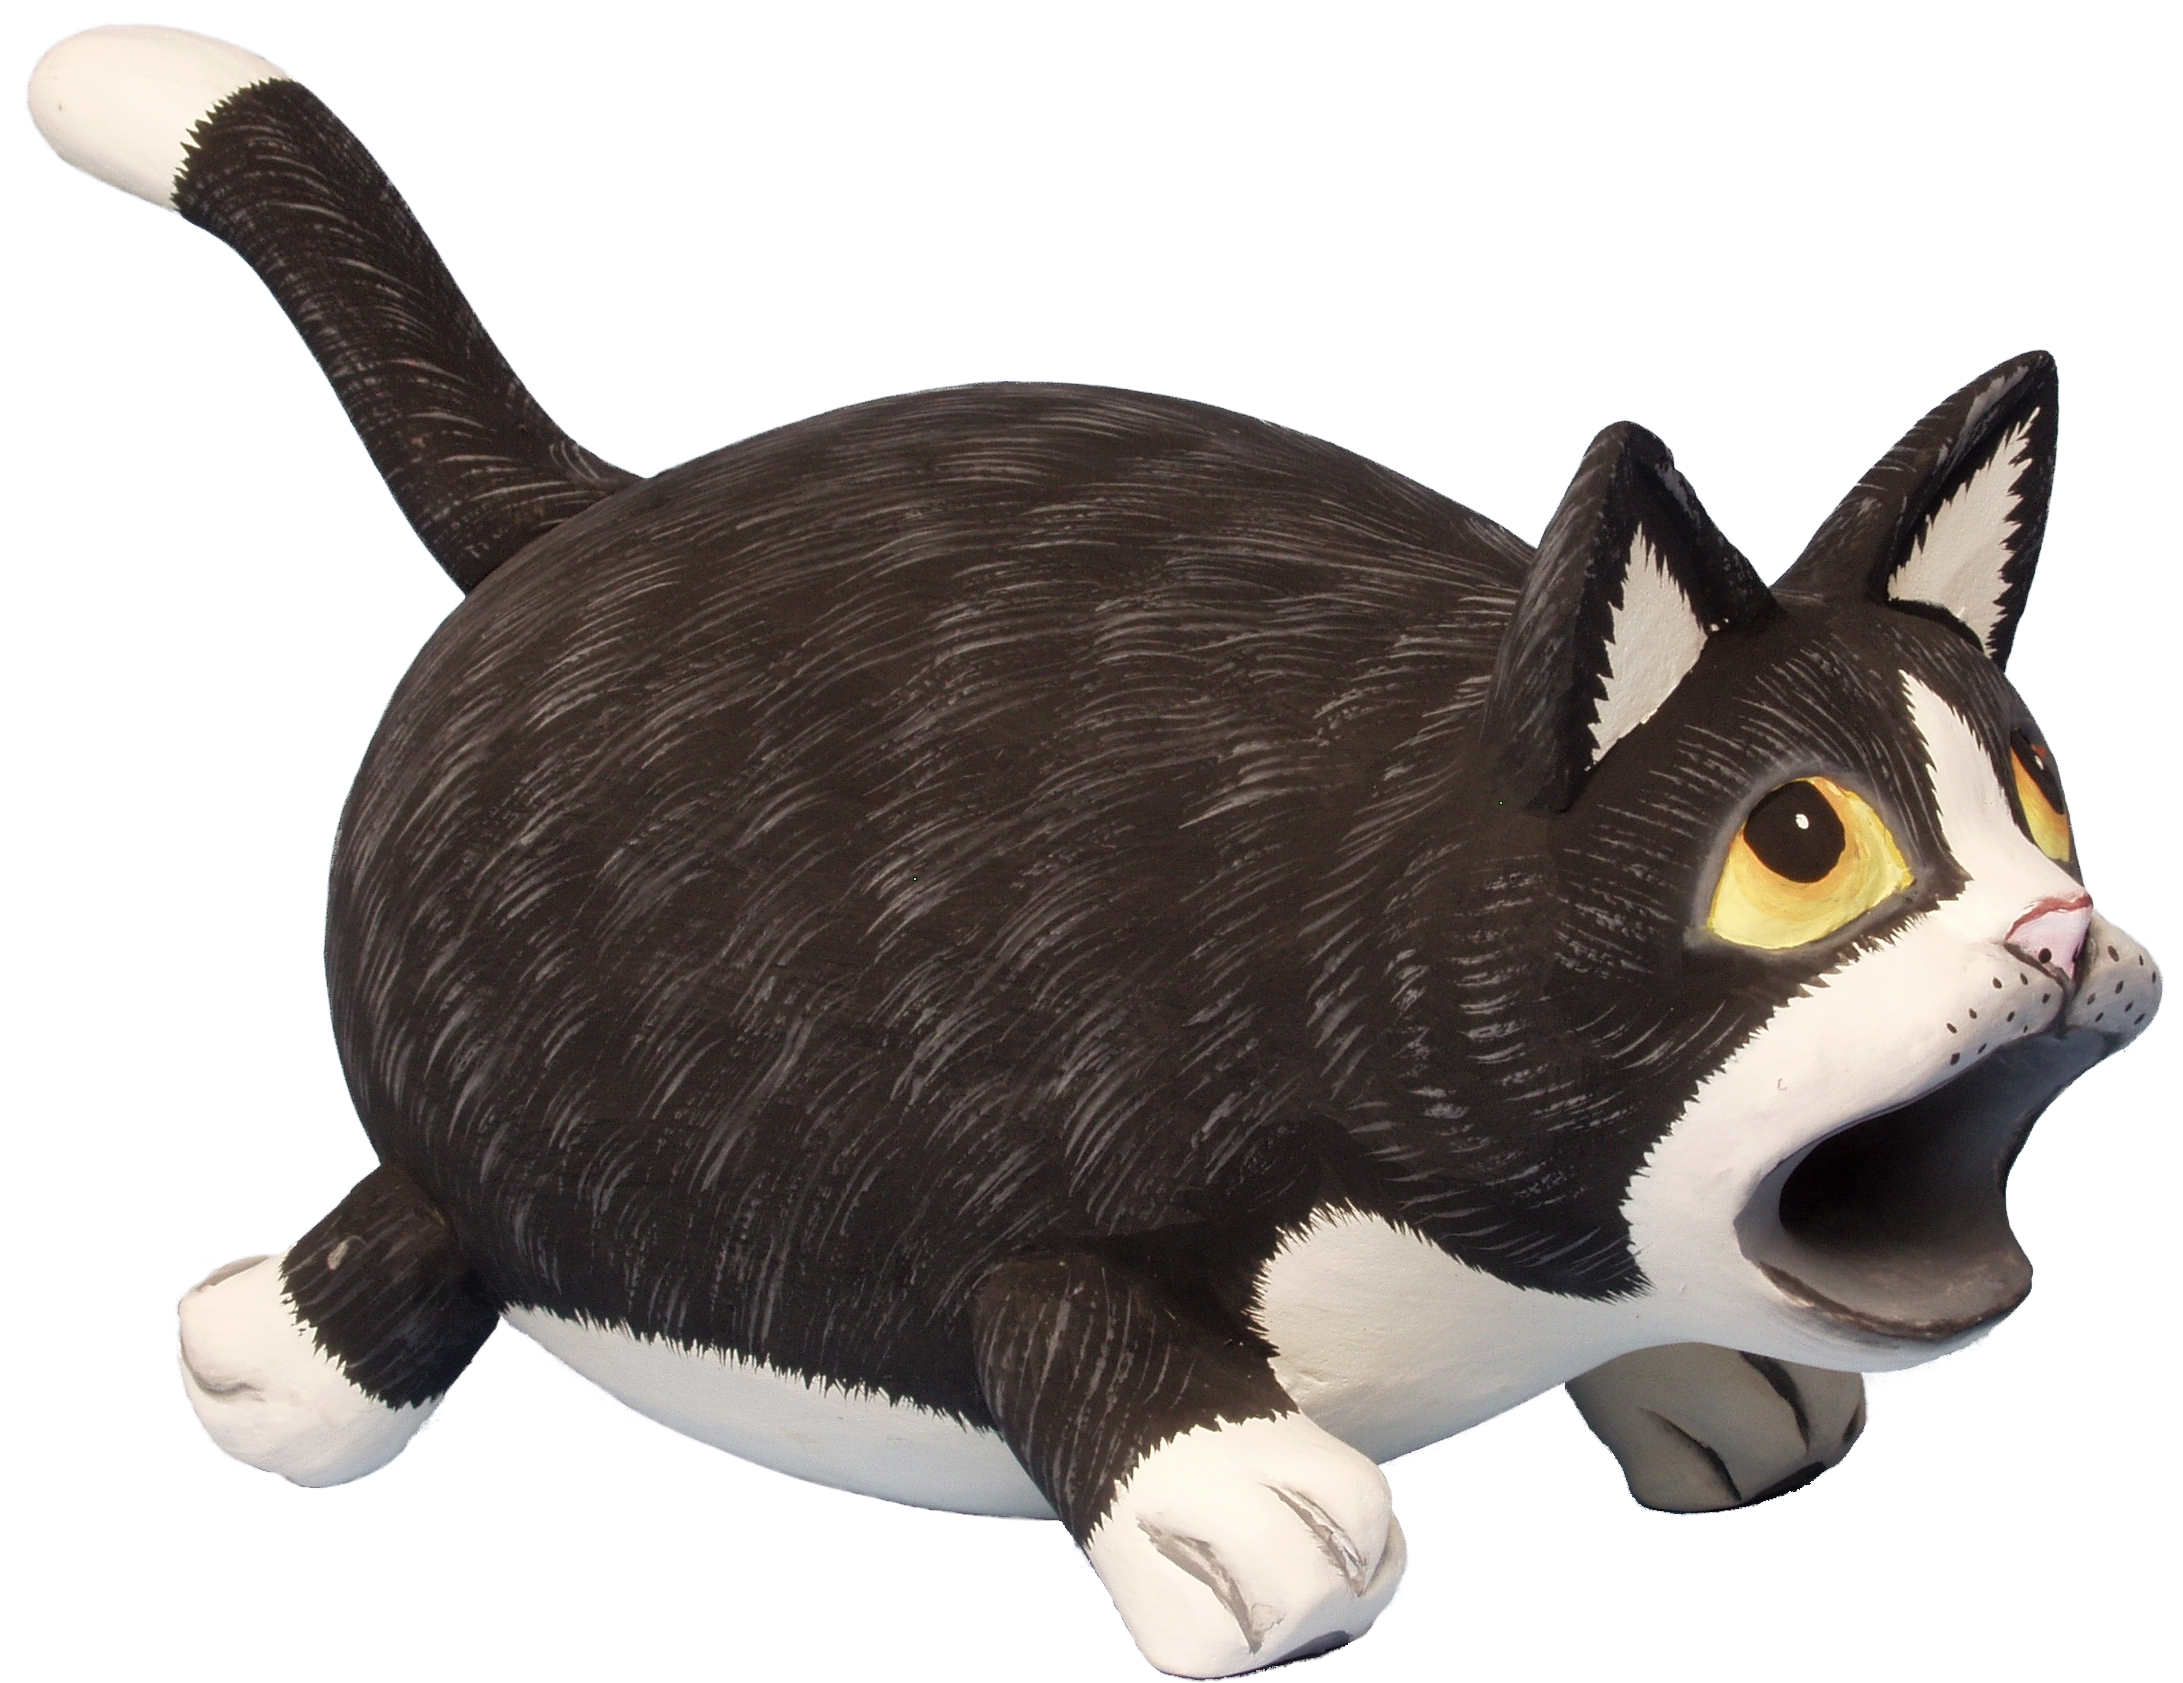 Big Mouth Black and White Cat Birdhouse